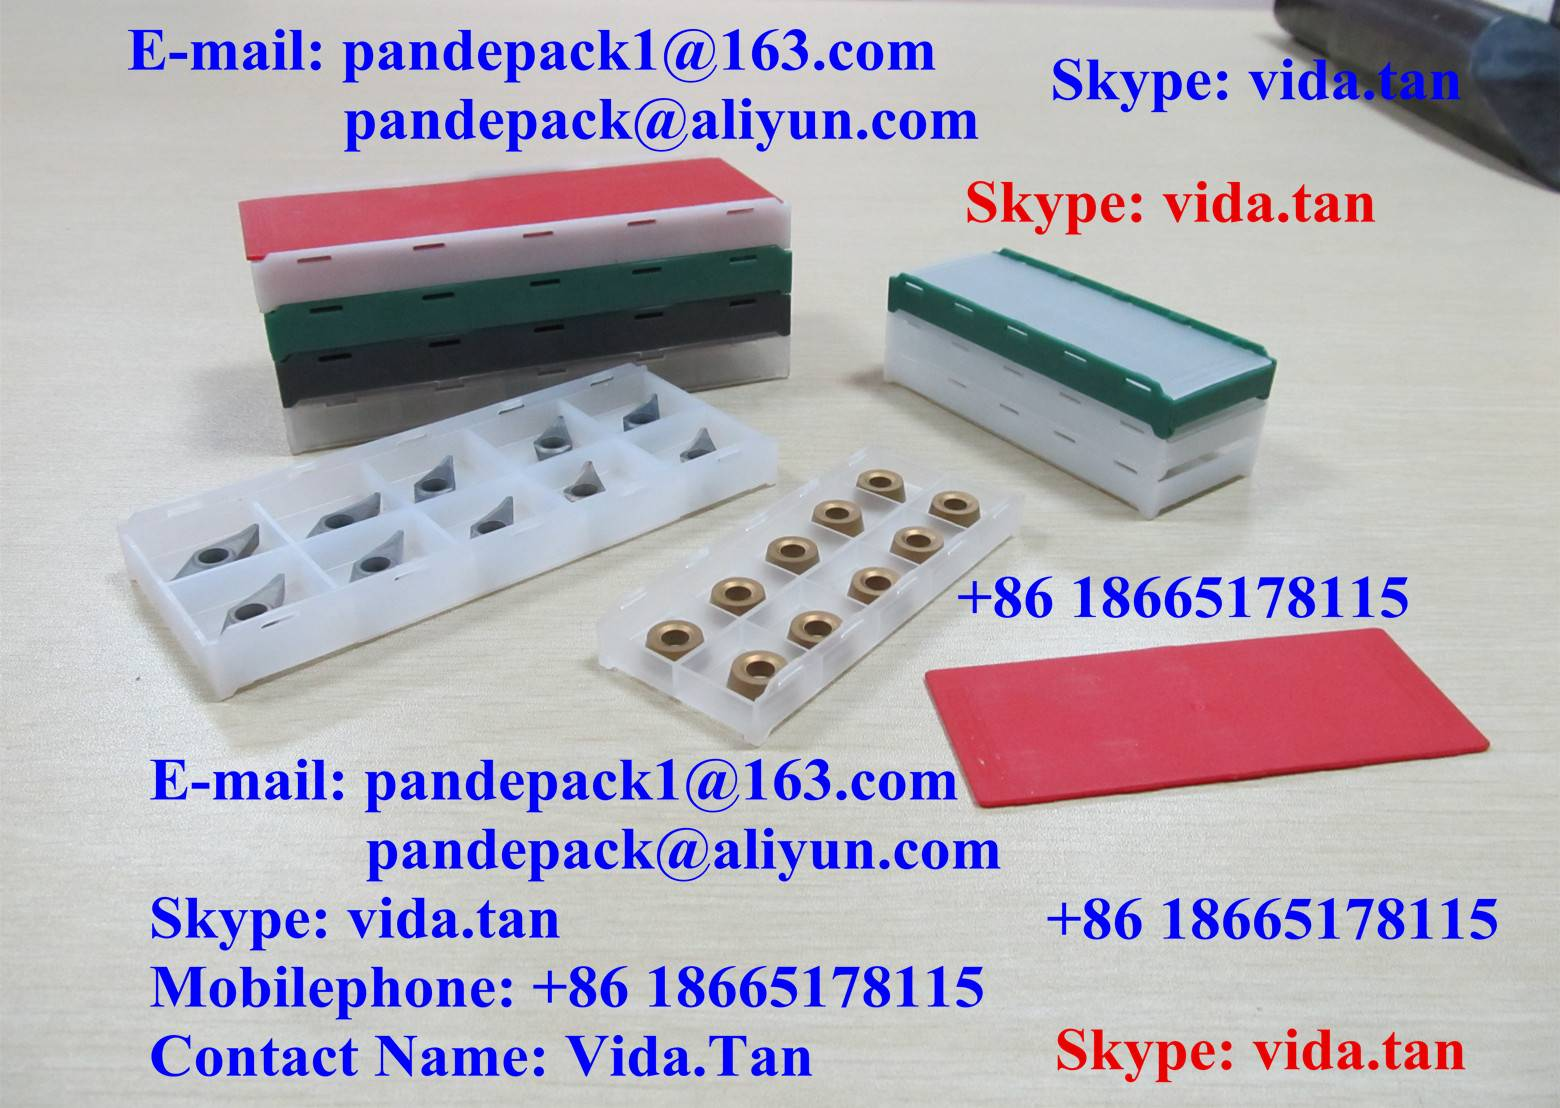 Sell InsertClickBox/InsertBox/Blade Box/Plastic Box/Package/Cutting Tool Box/Package/Tool Pack/Box